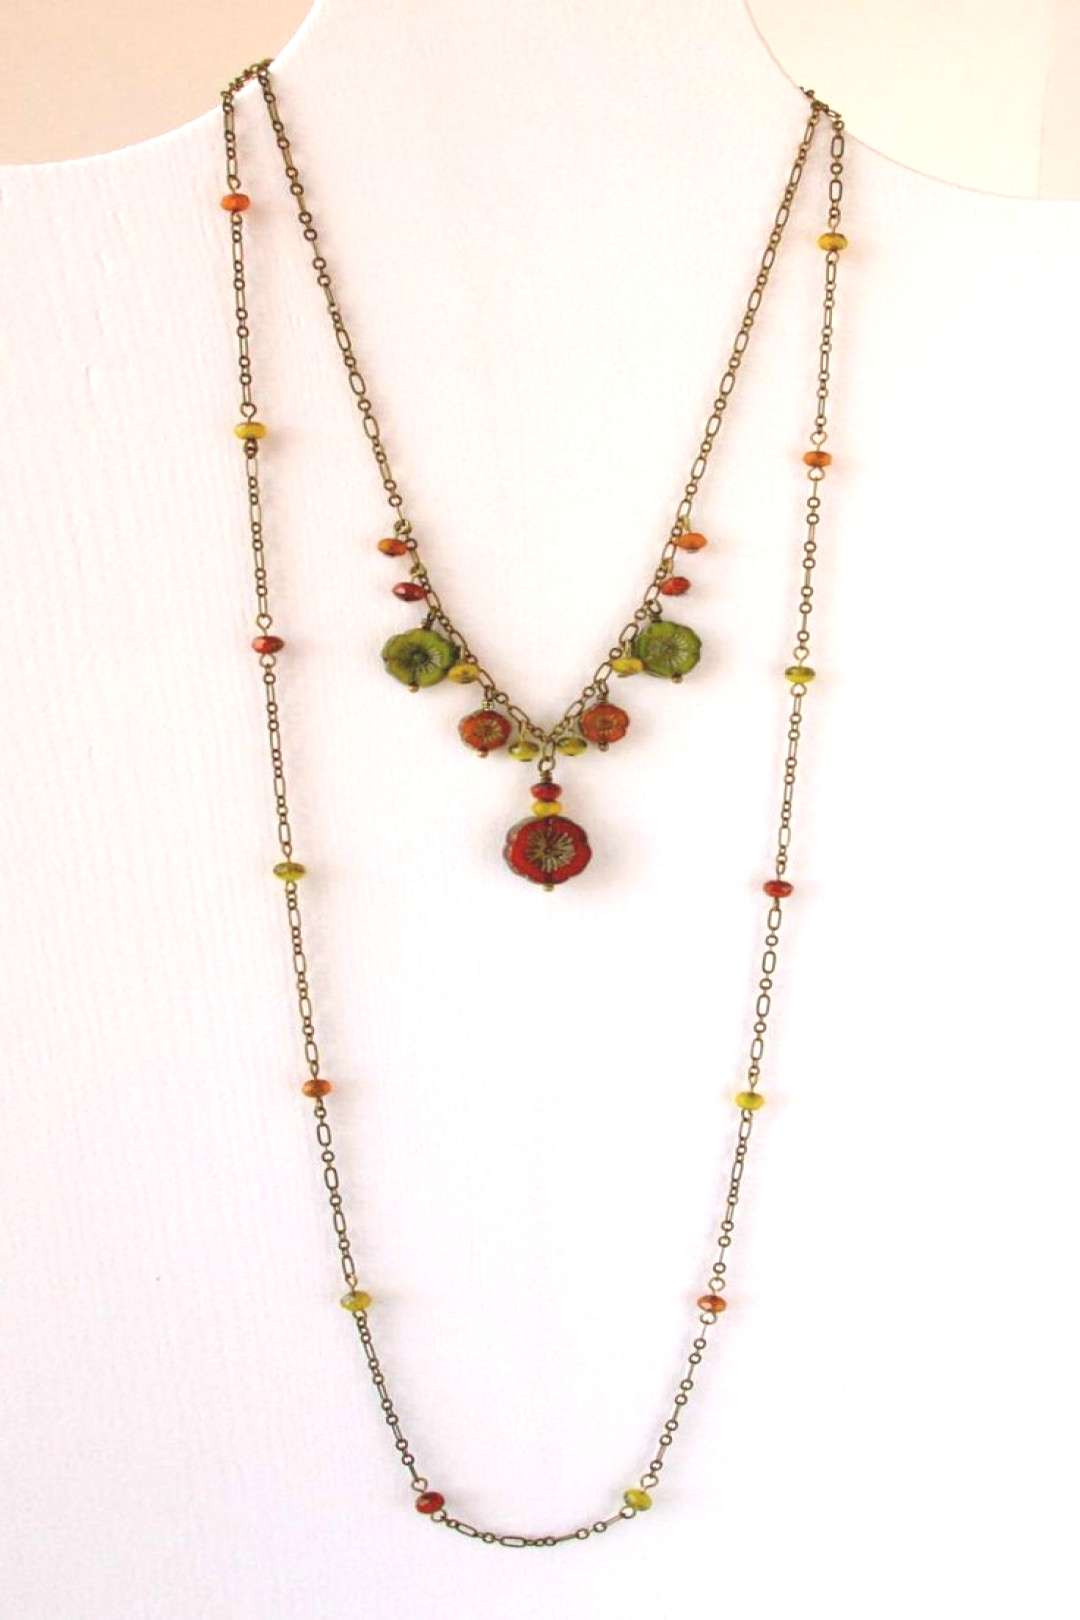 Handmade Necklace - Beaded Necklace - Floral Jewelry - Orange Necklace - Green Necklace - Orange an